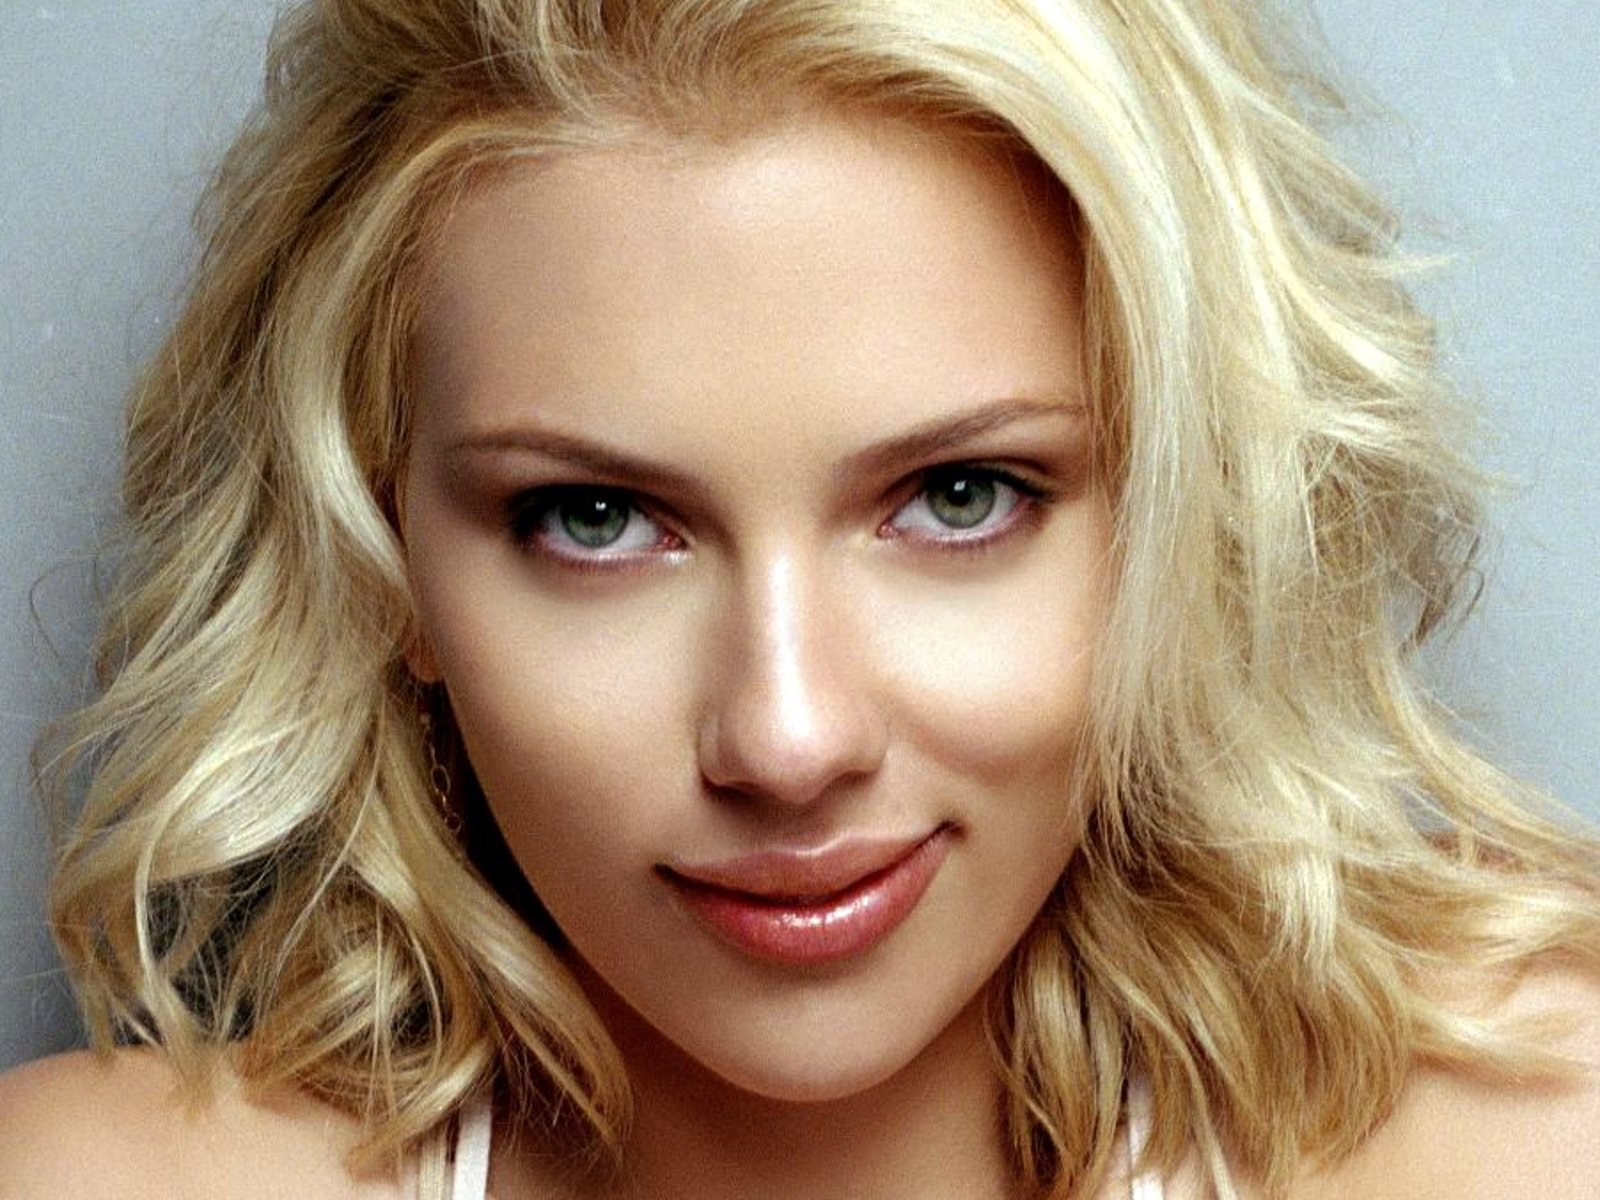 Scarlett Johansson Wallpaper on queen anne style house